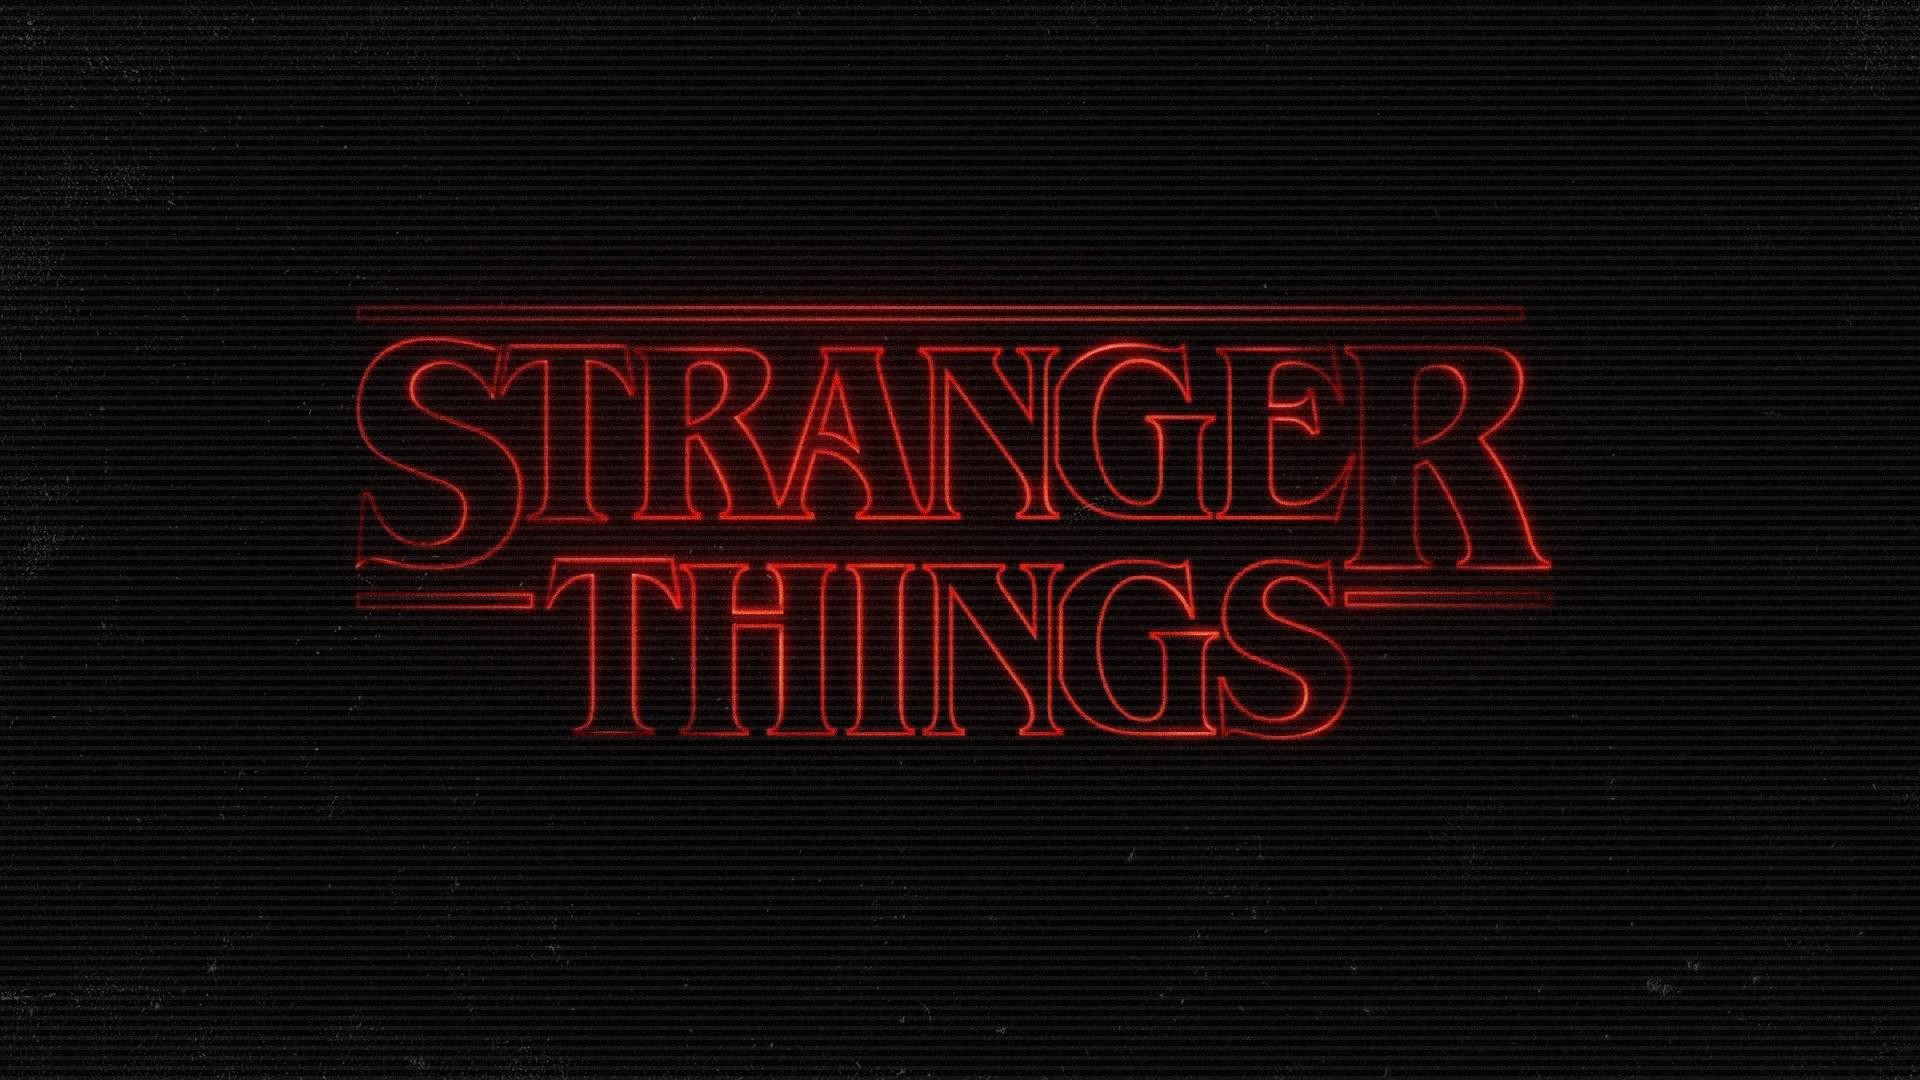 Stranger Things Wallpaper 1080p Stranger Things Pc